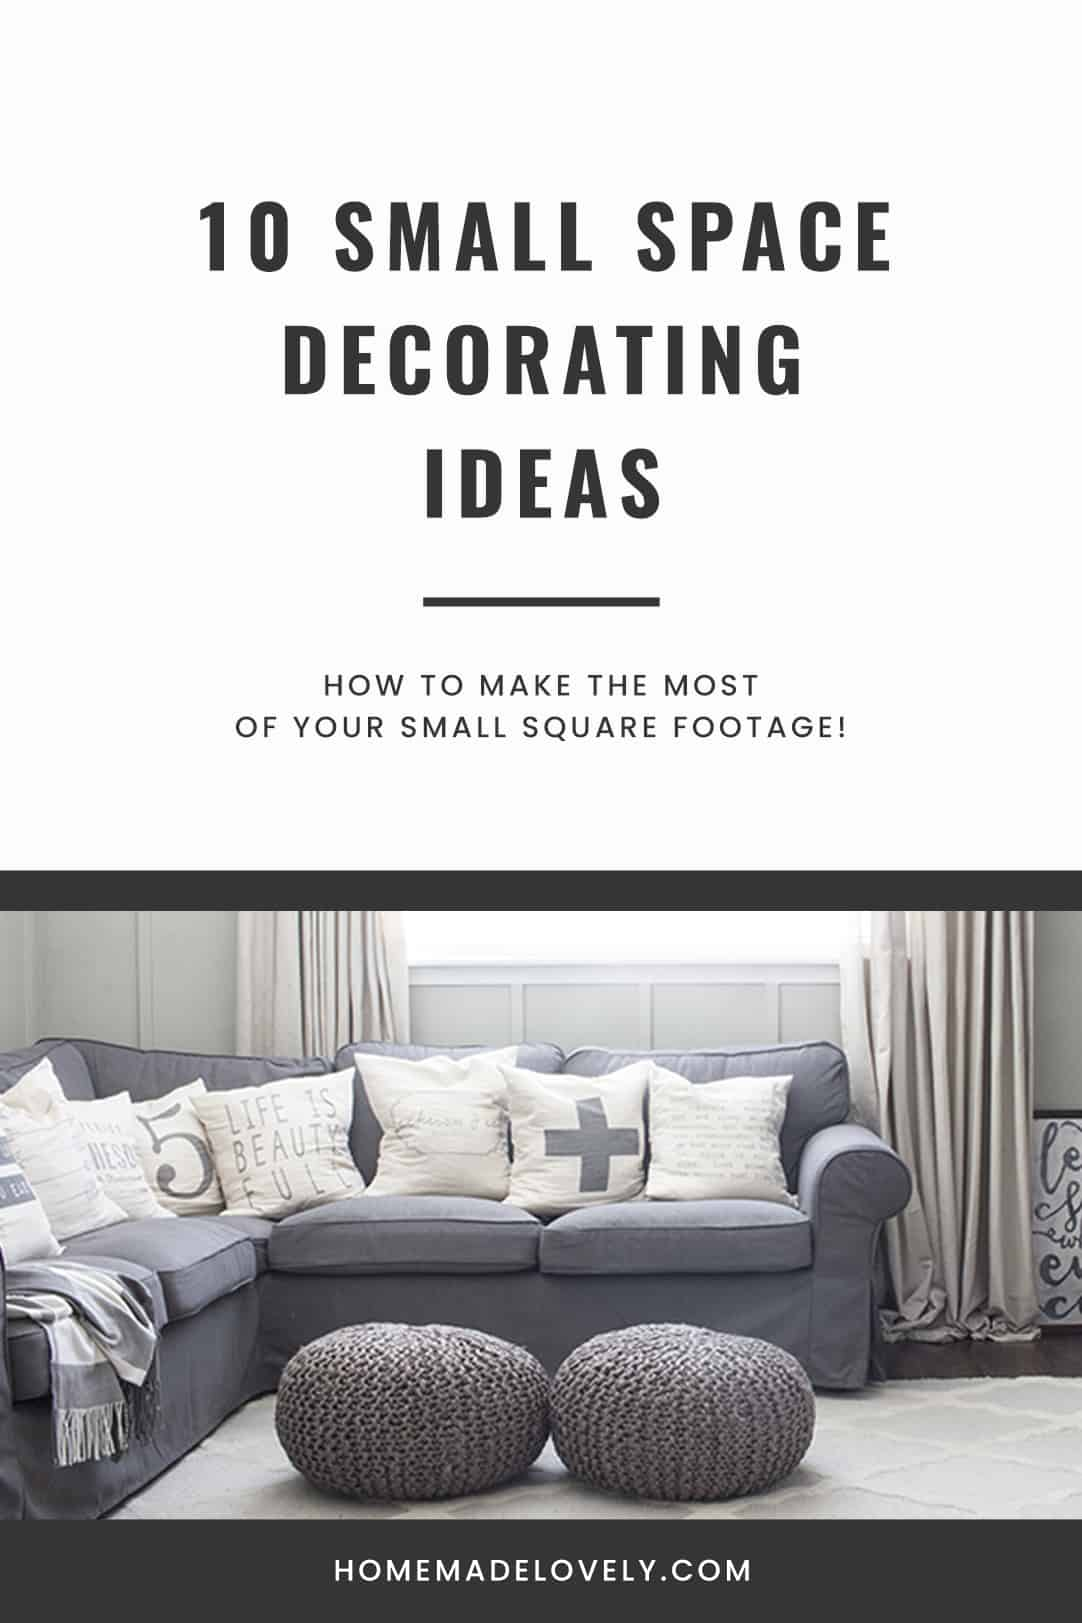 10 Small Space Decorating Ideas pin 2